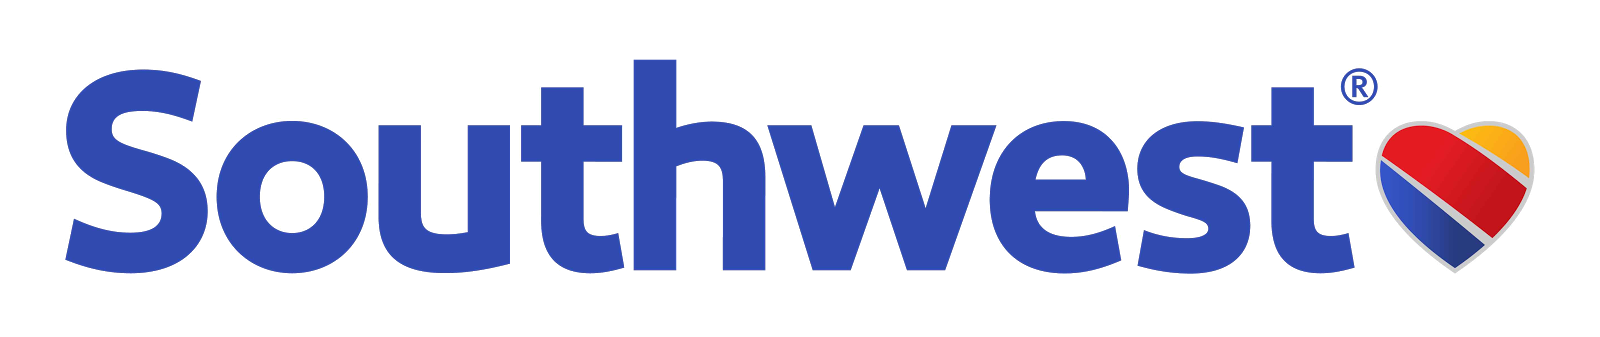 Image result for southwest airlines logo